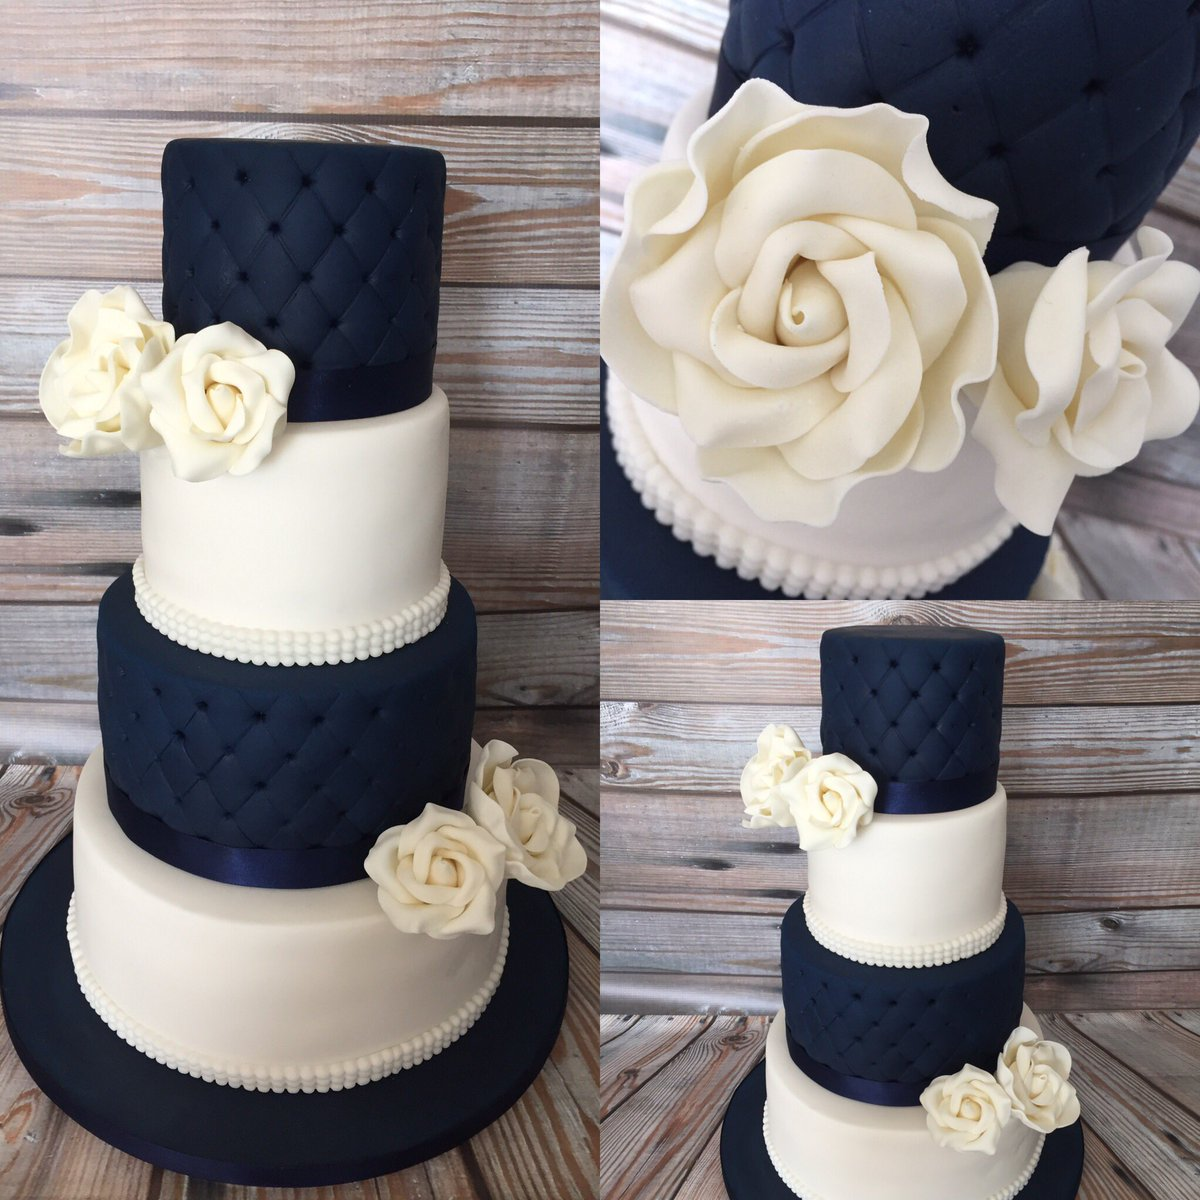 Dark blue and white 4tier #wedding #cake made to order @CakesAdams finished with #handcrafted roses and quilted effect. #sheffieldissuper<br>http://pic.twitter.com/fB55lzDWDl